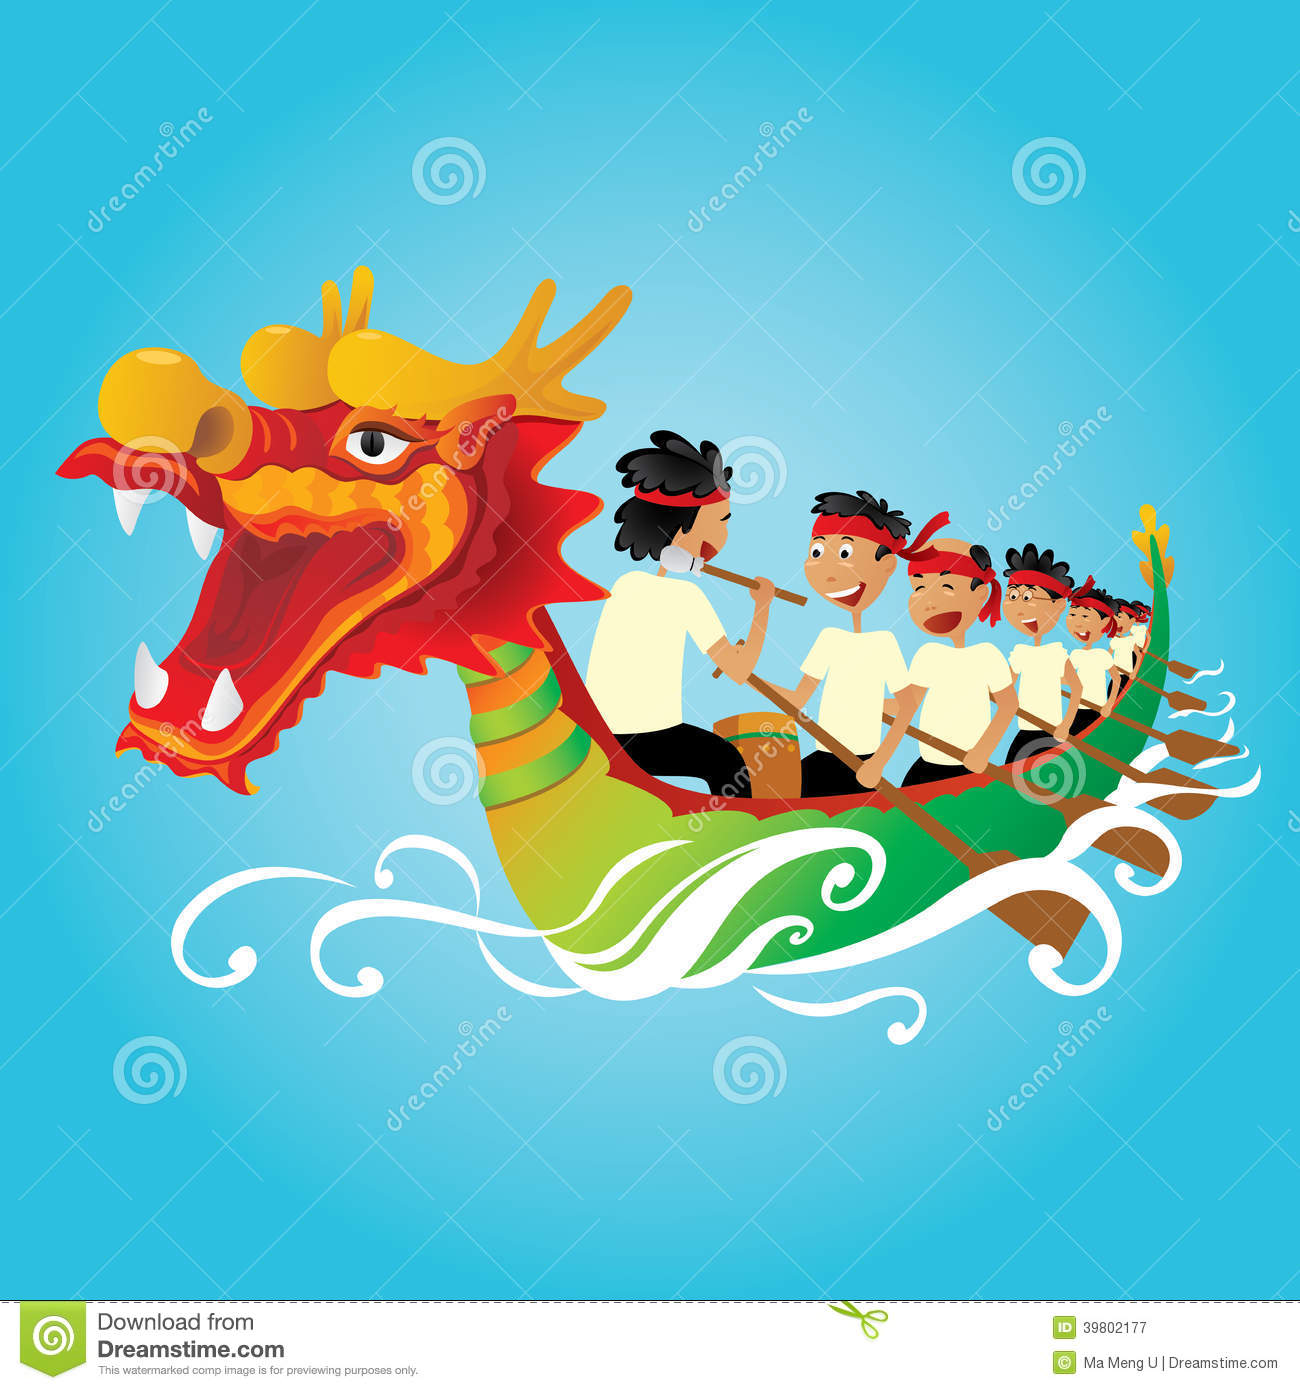 Chinese Dragon Boat Competition Illustration Stock Vector.